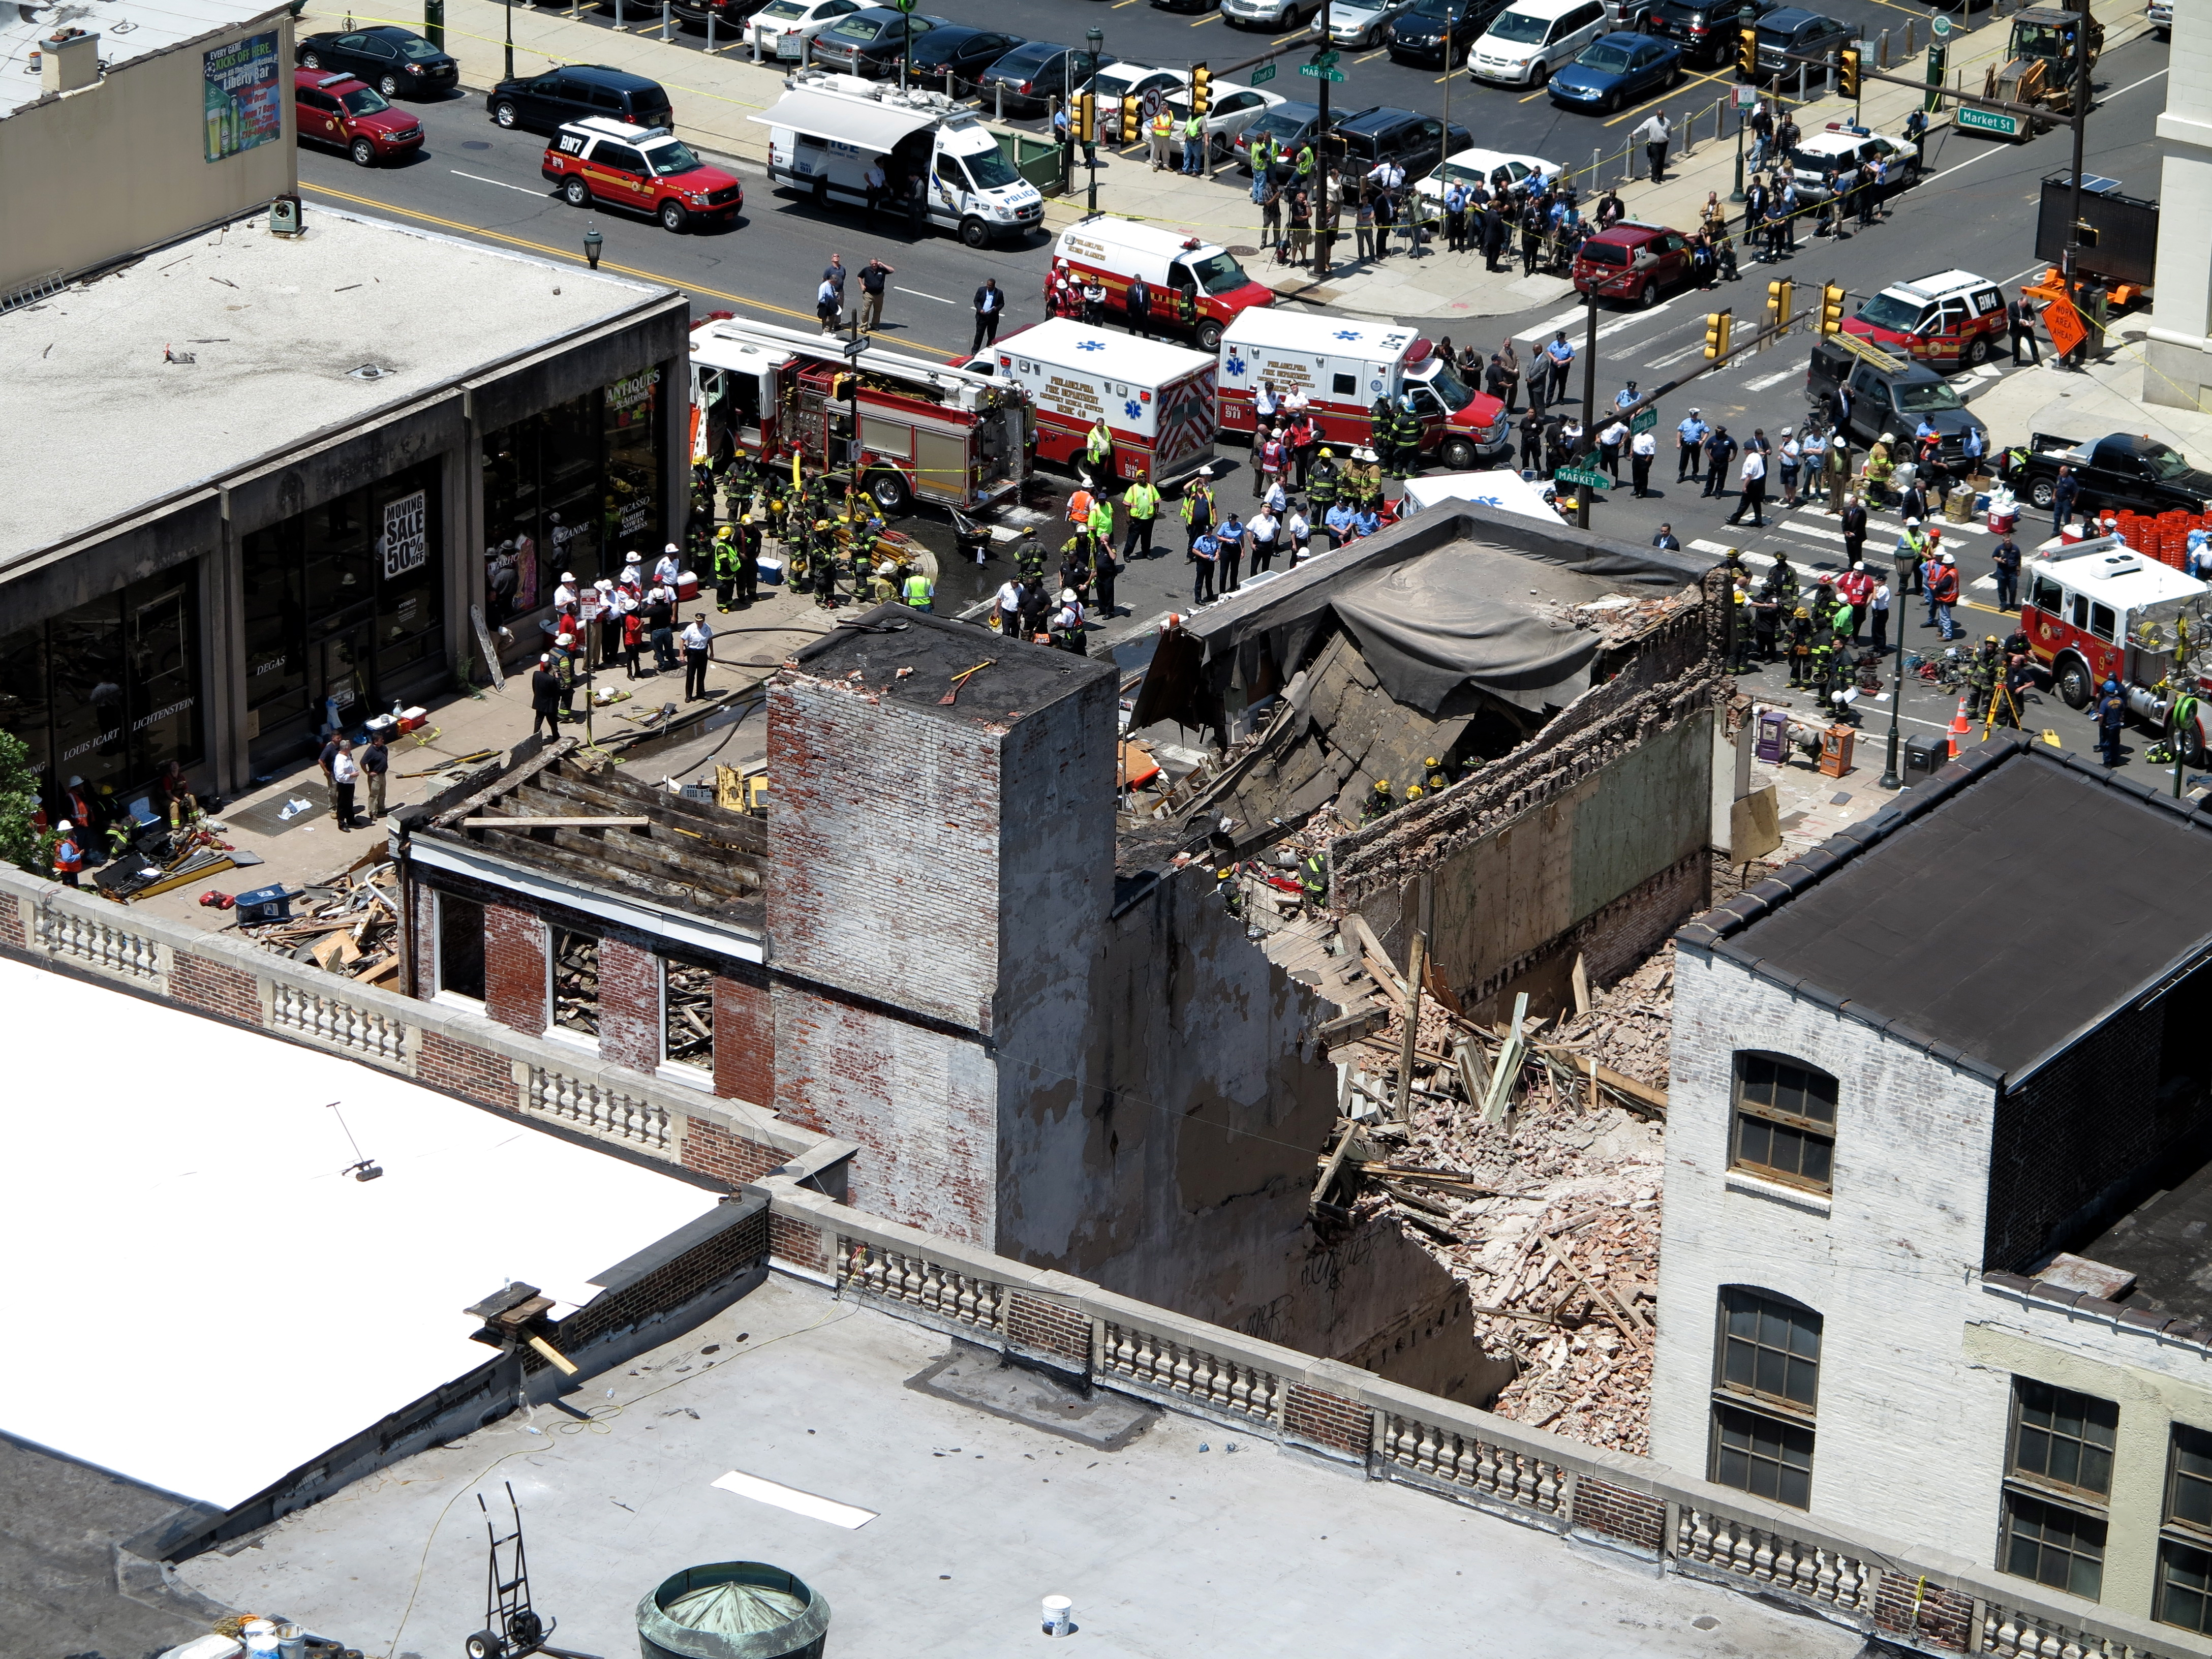 The collapse site from above, from the RiverWest Condominium's rooftop.